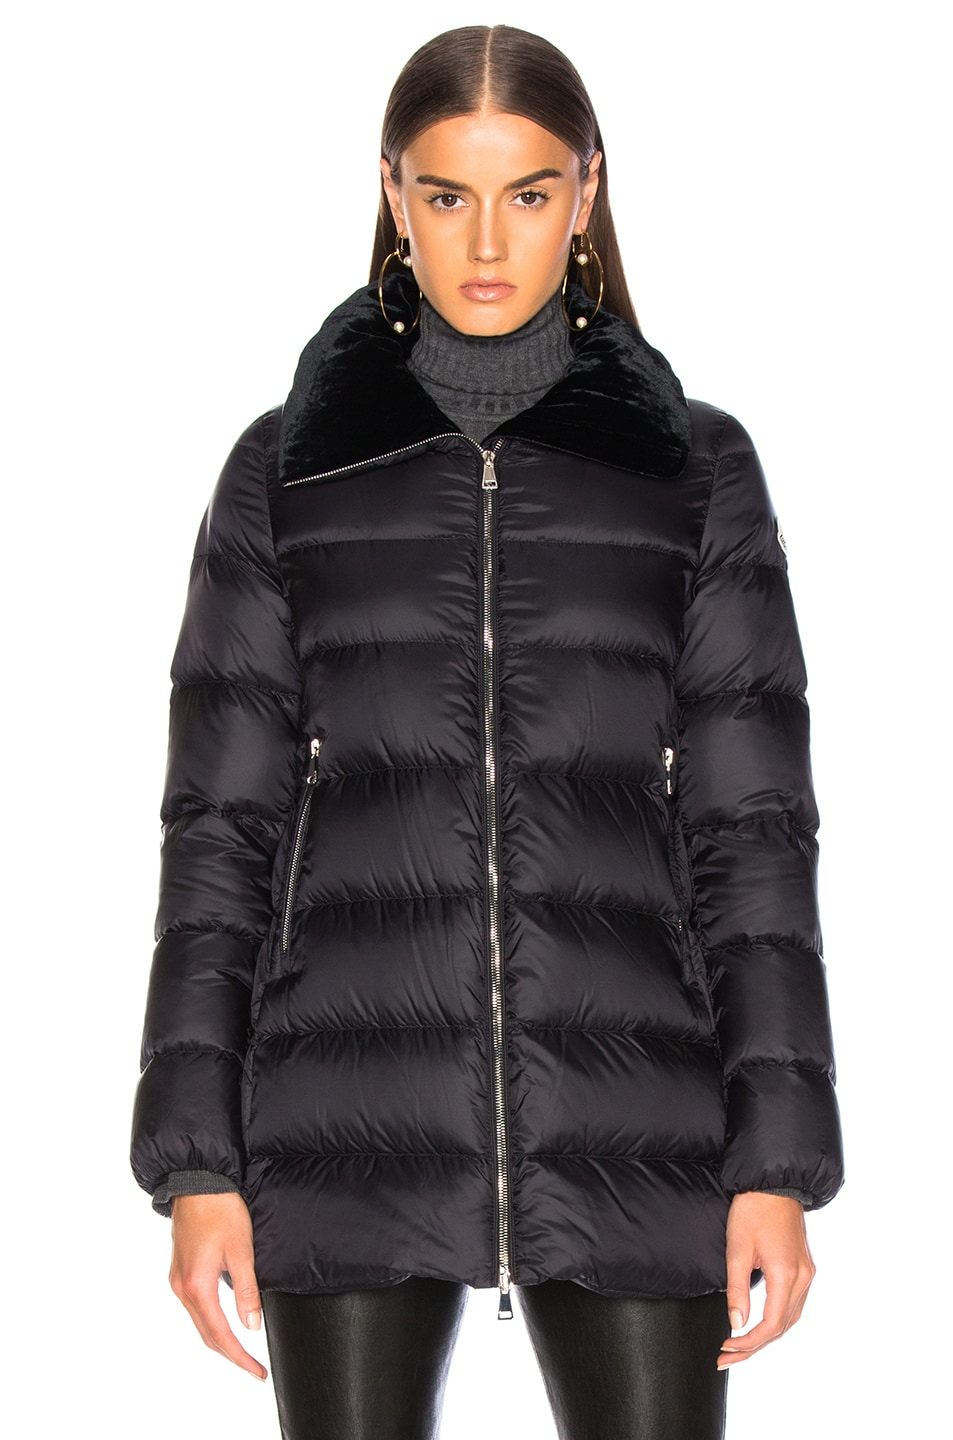 Image 2 of Moncler Torcol Giubbotto Jacket in Black